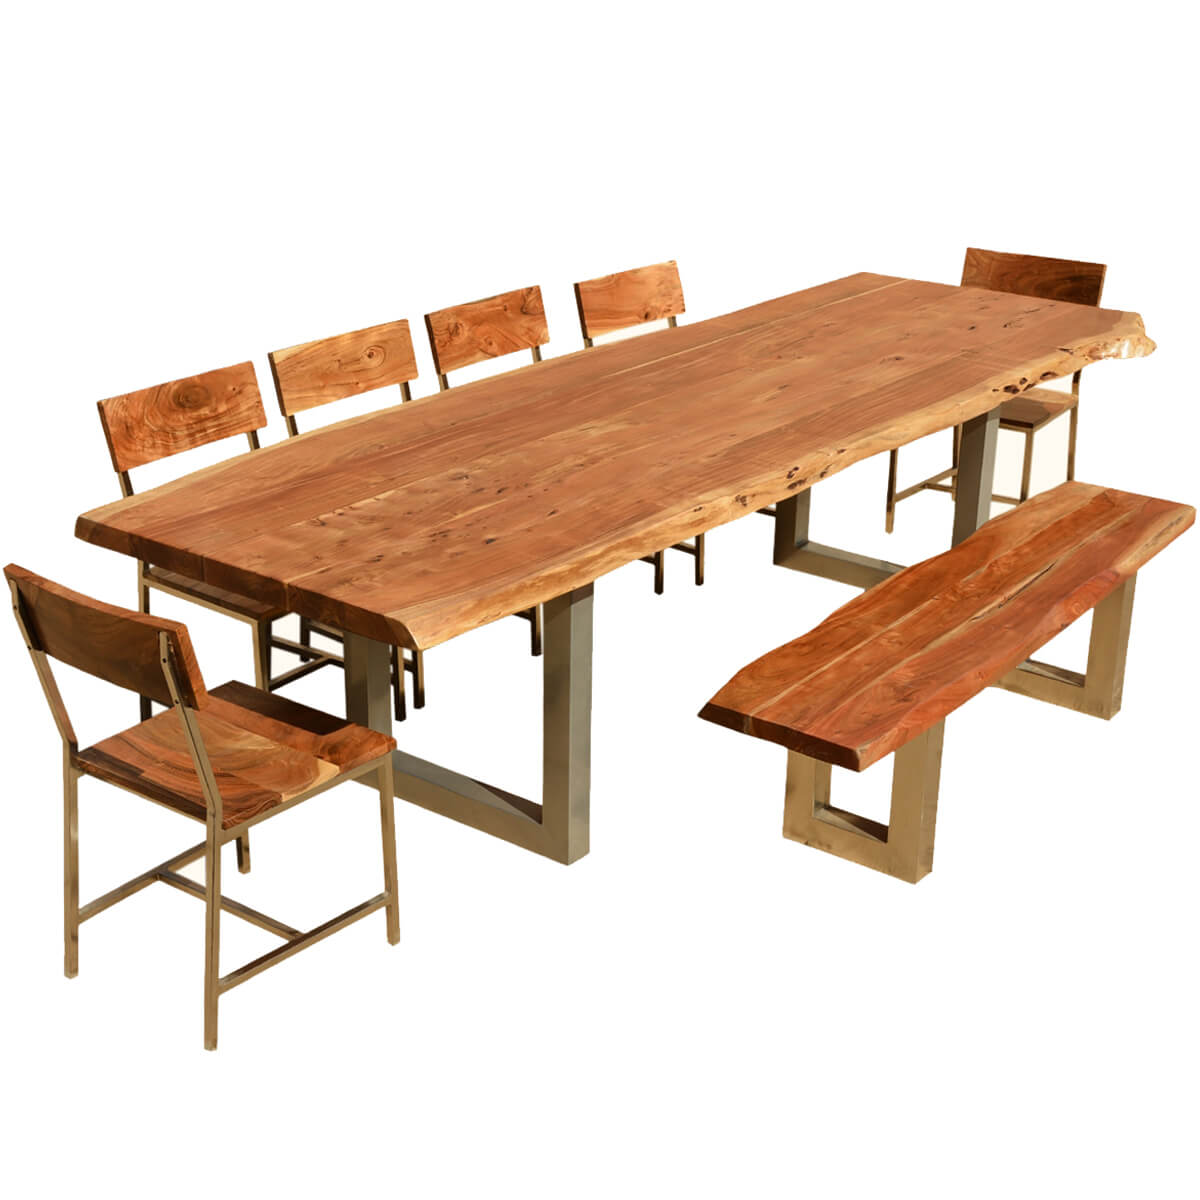 117 live edge dining table w 6 chairs bench acacia for Dining table with bench